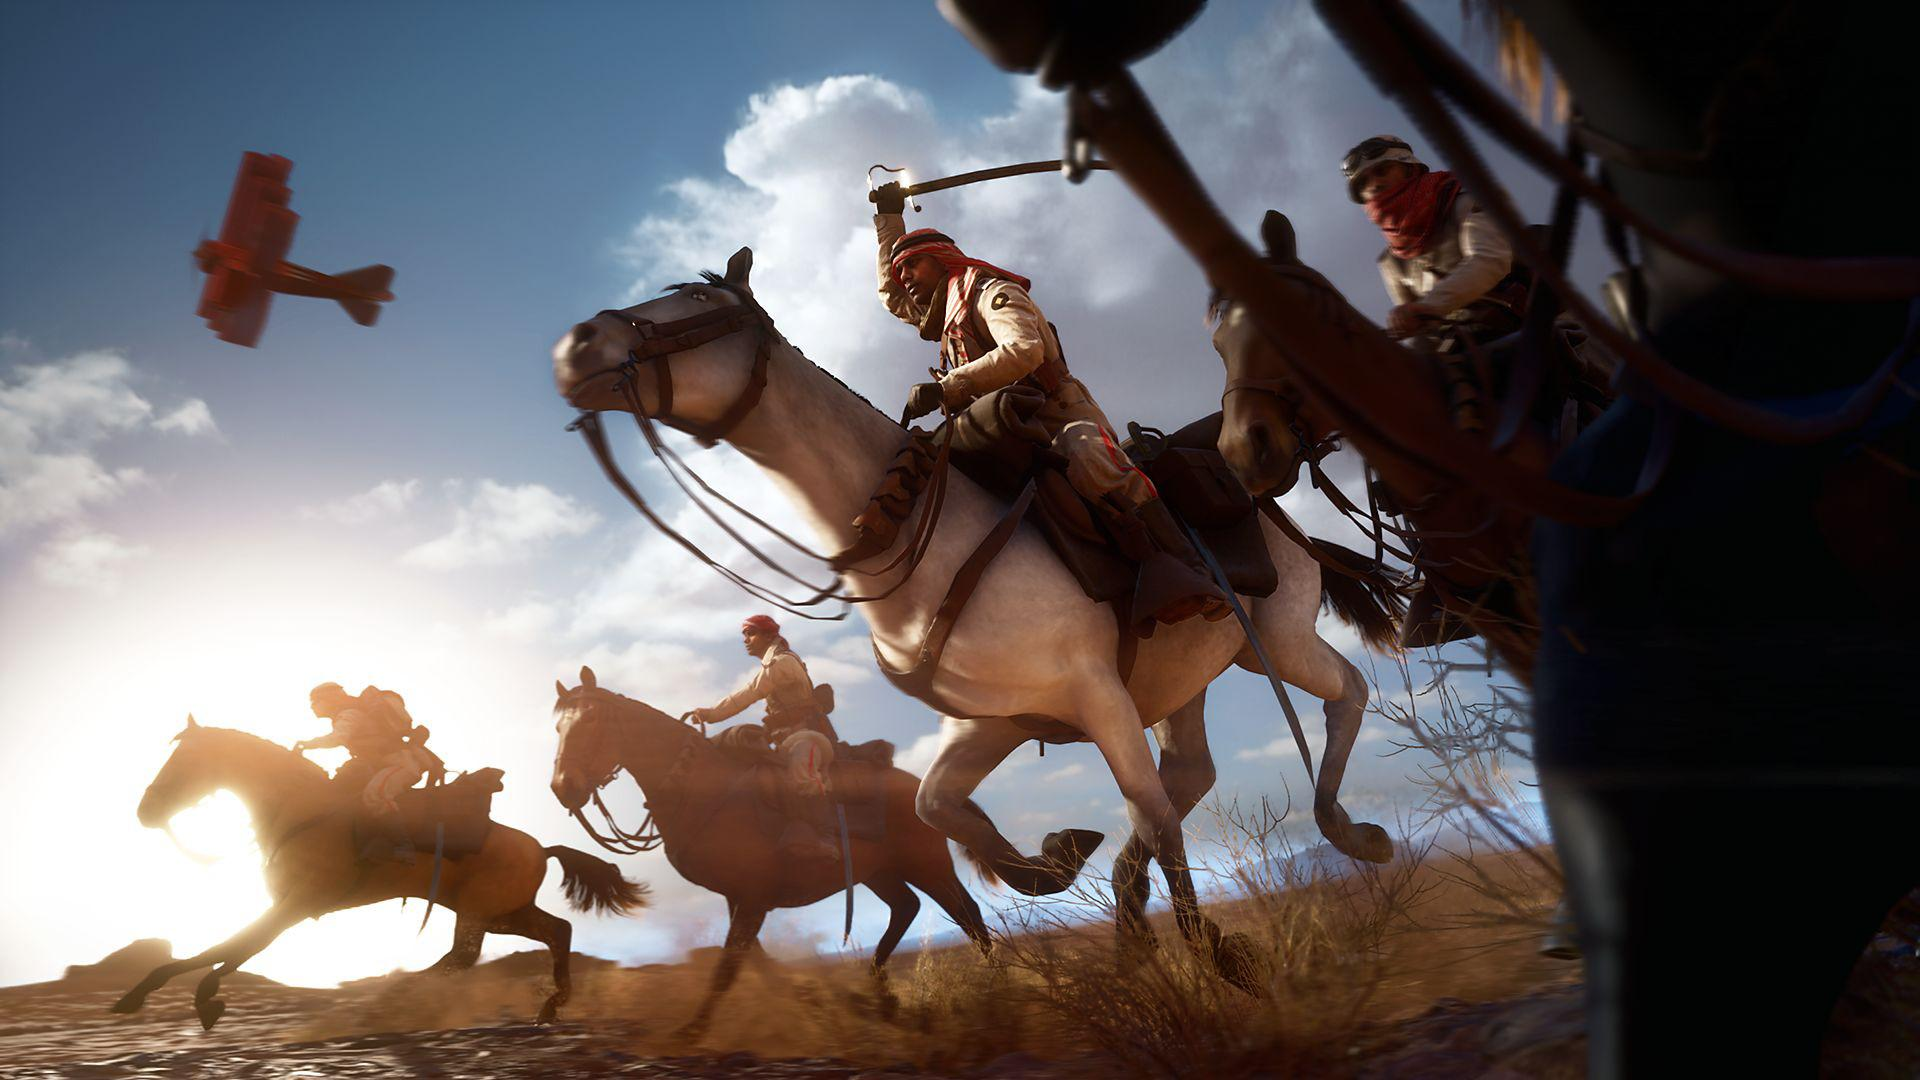 Battlefield 1 featured mounted cavalry armed with melee weapons, carbine rifles and anti-tank grenades